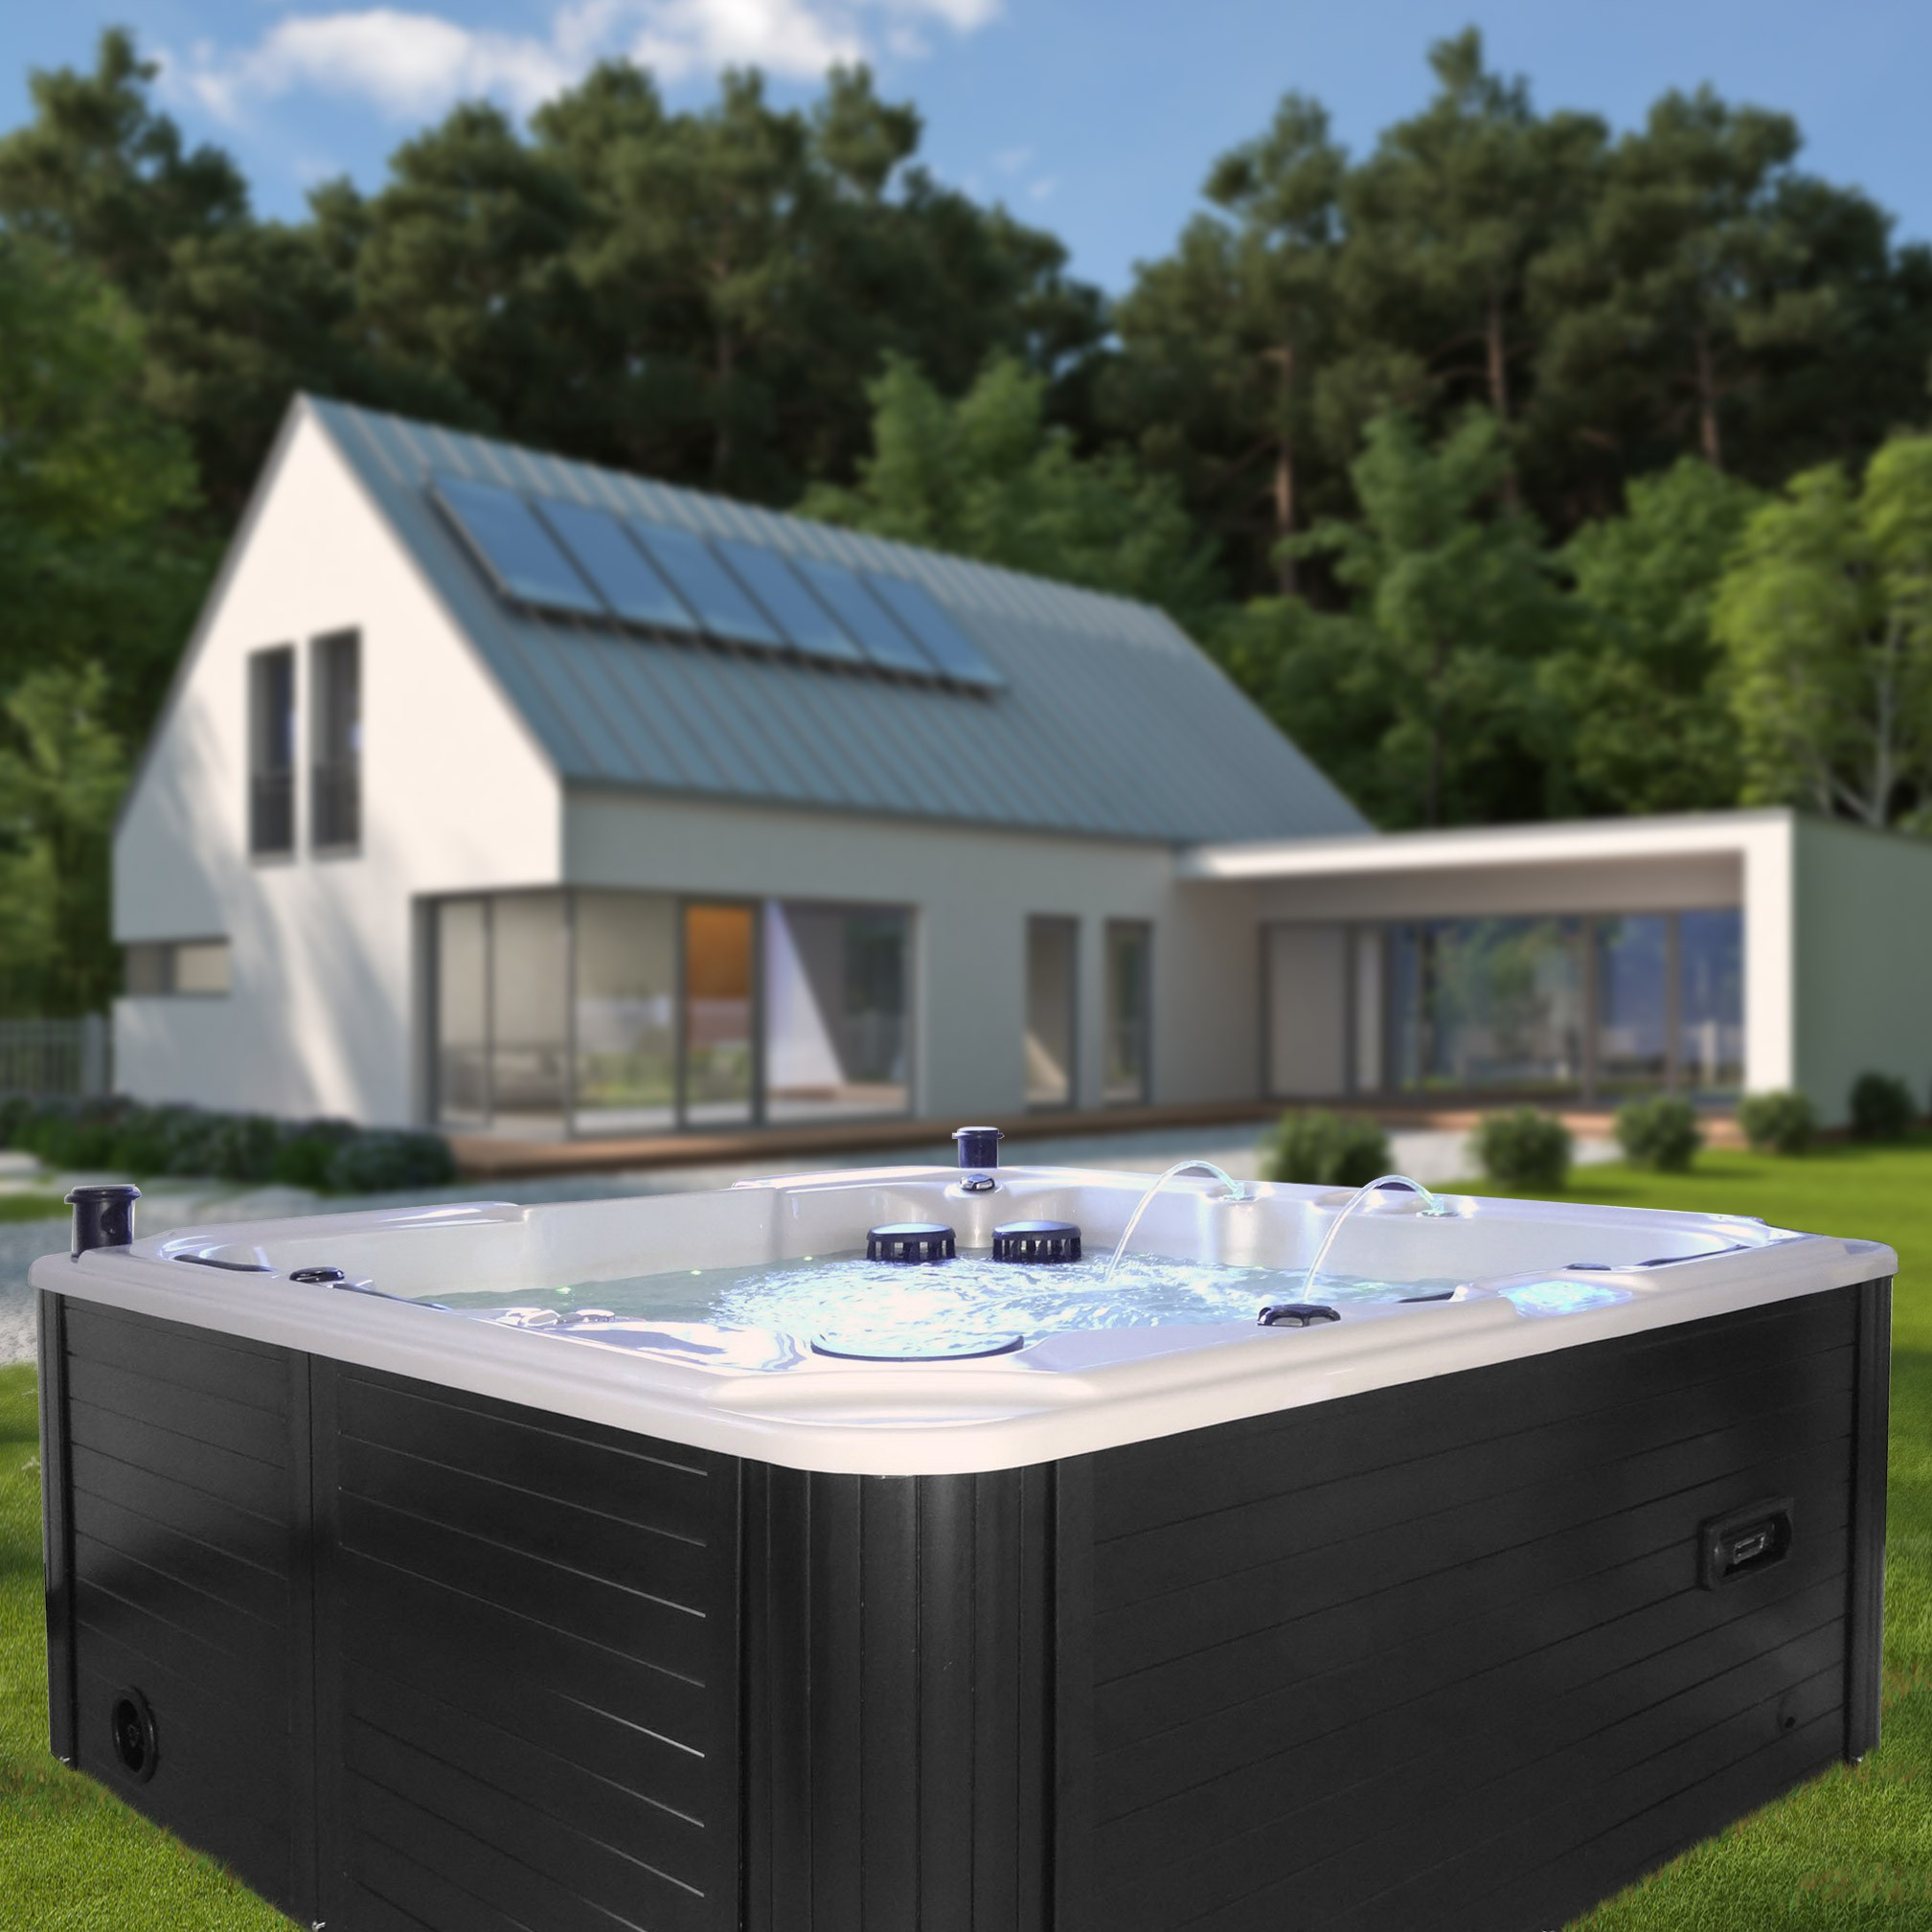 winteraktion aquaspring whirlpool 1803 badewelt aussenwhirlpools. Black Bedroom Furniture Sets. Home Design Ideas